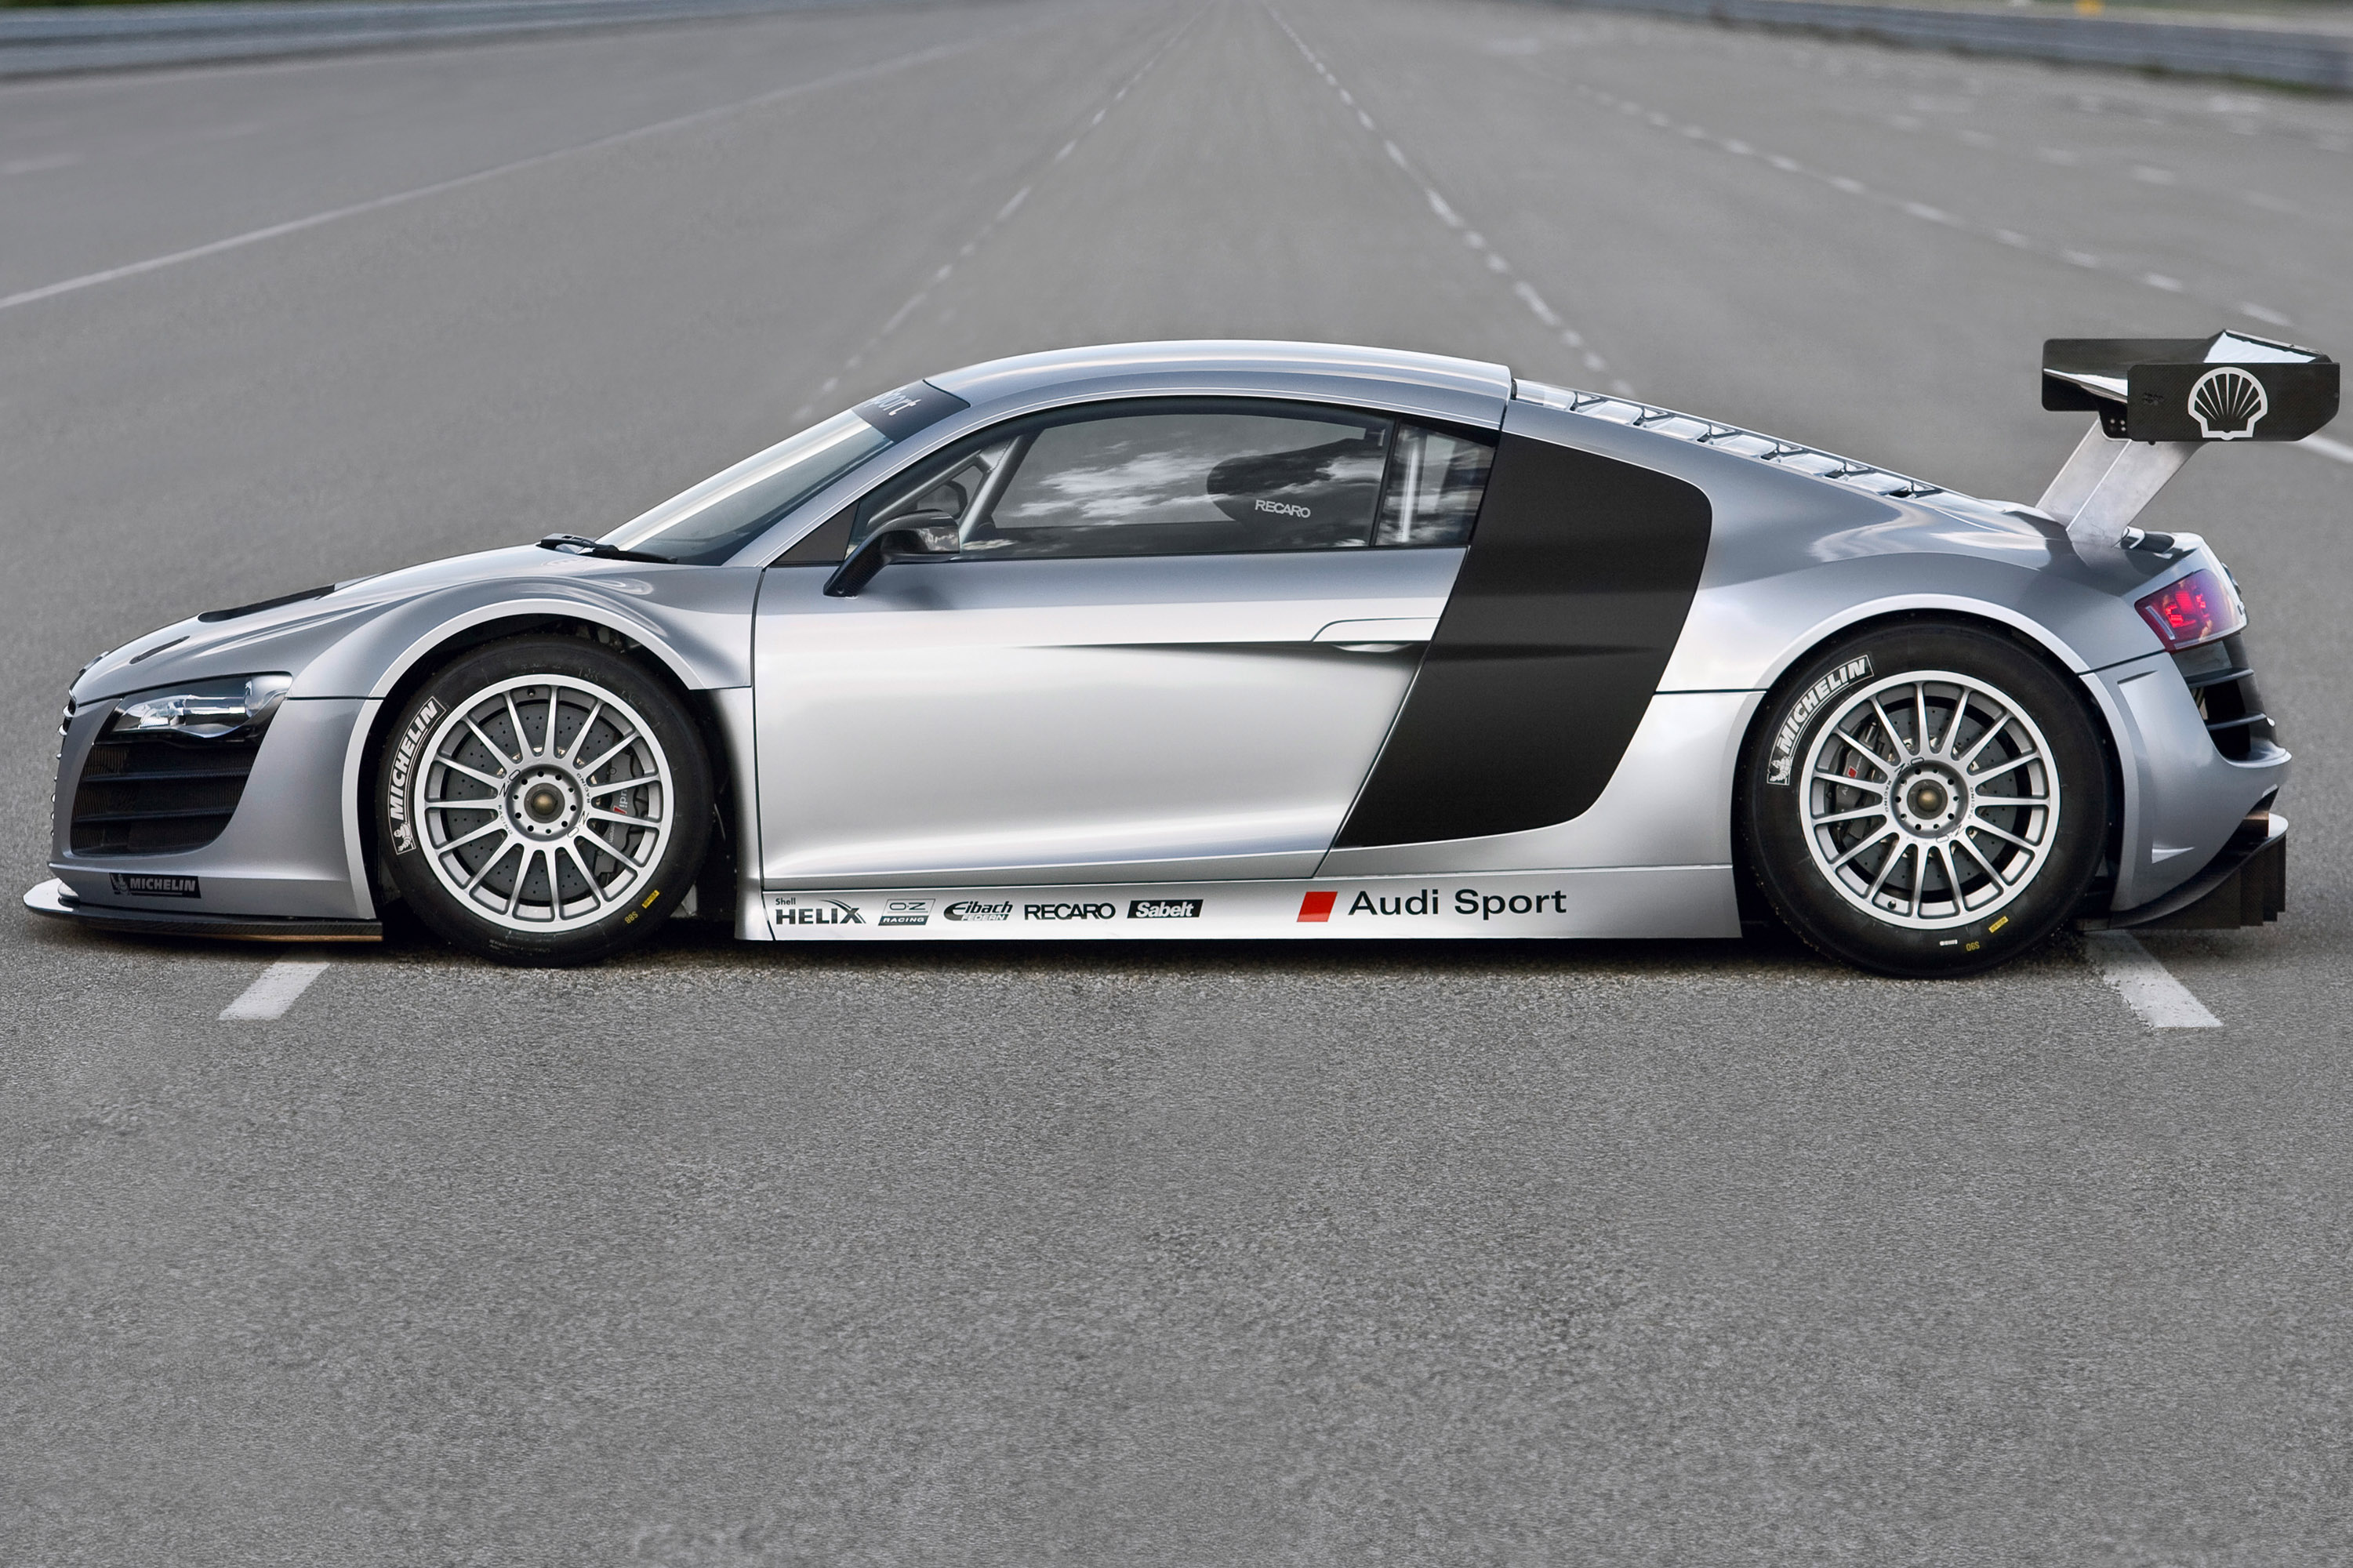 Audi R GT With OZ Race Wheels Equipped OZRACING OZ - Audi r8 race car 01 gt5